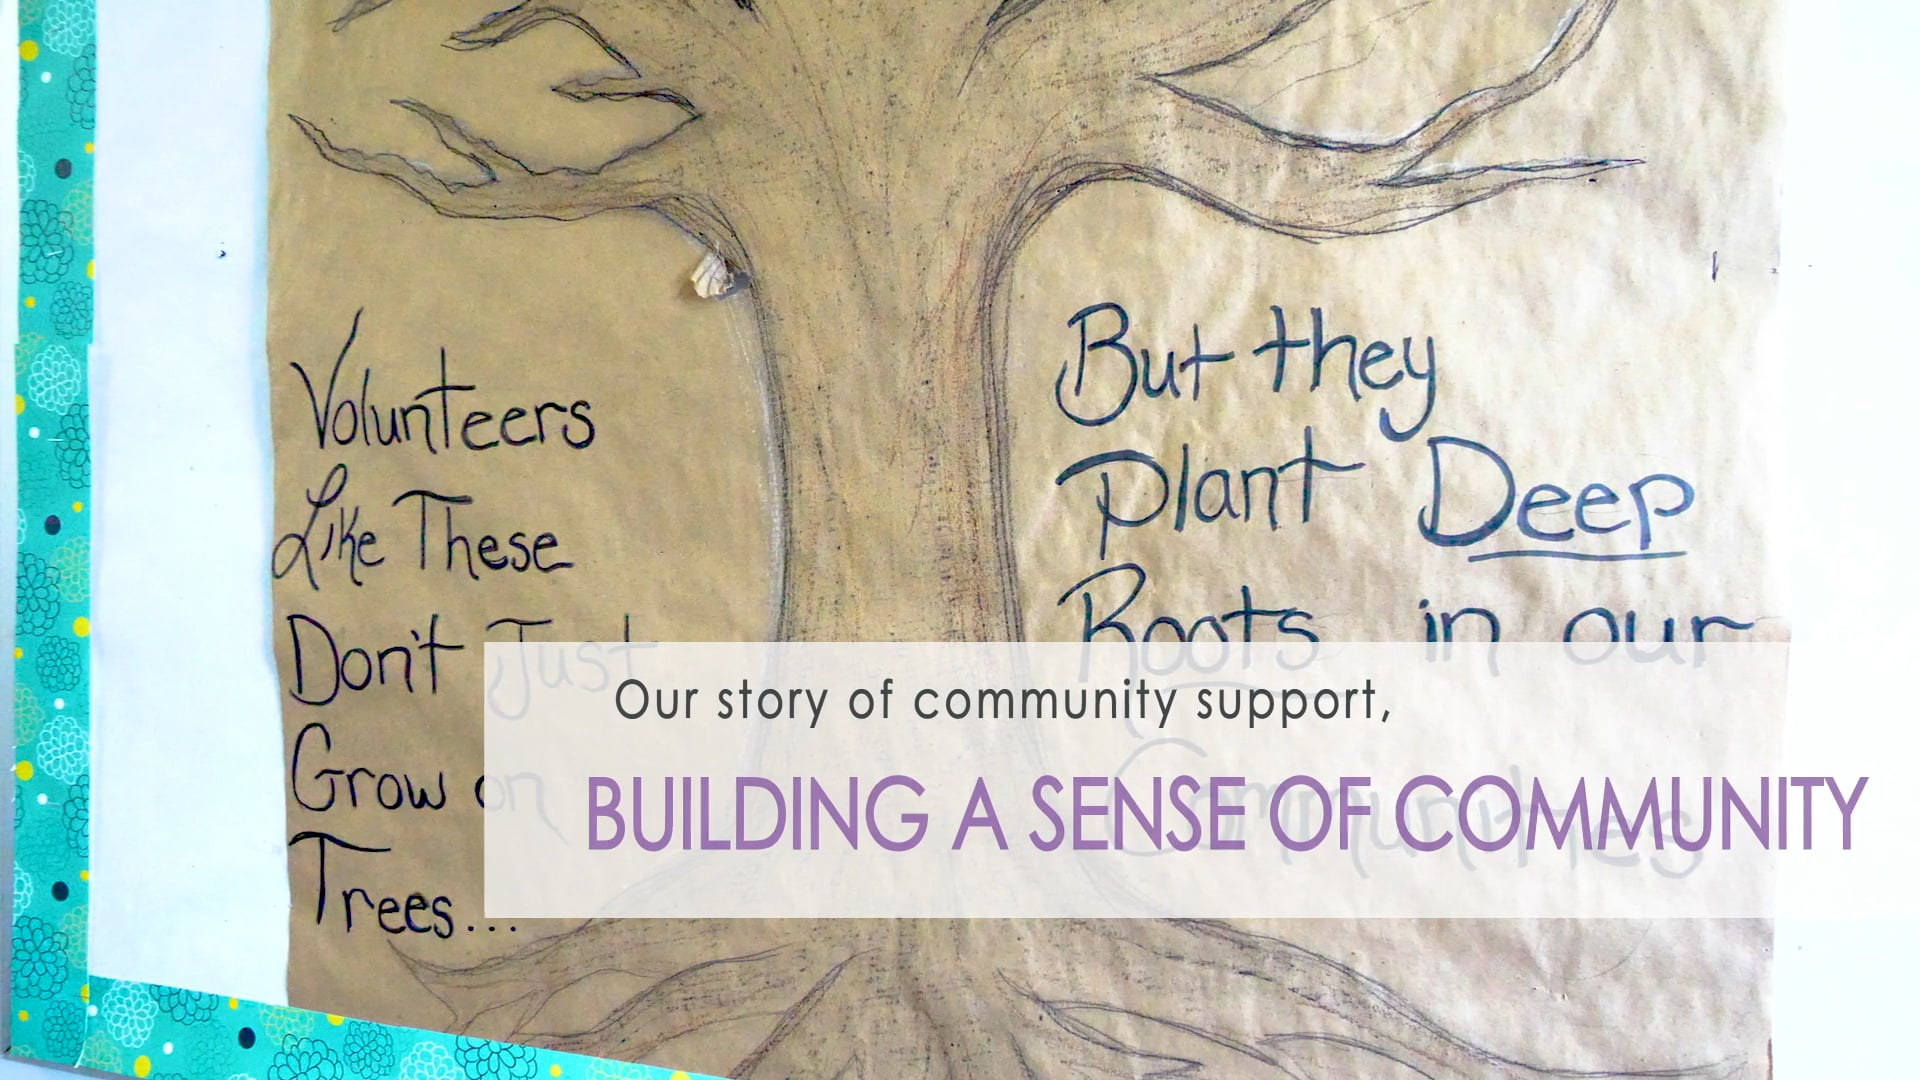 Building a Sense of Community - My story of community support